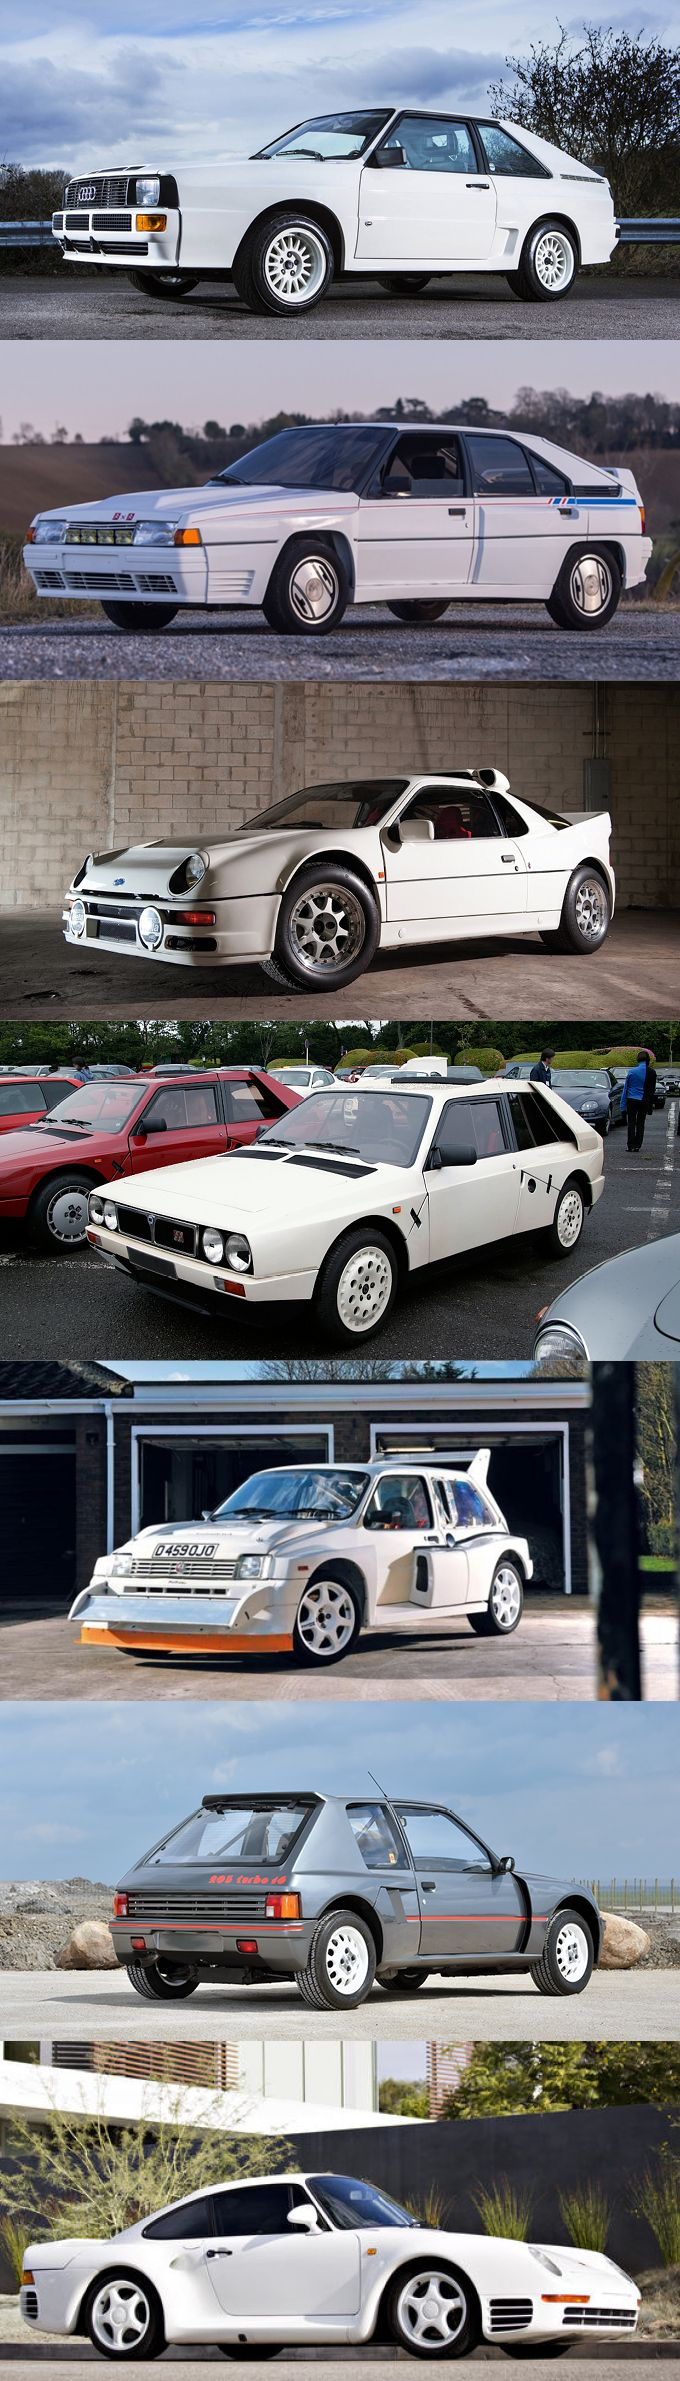 1983 Group B / Audi Sport Quattro / Citroën BX 4TC / Ford RS200 / Lancia Delta S4 / MG Metro 6R4 / Peugeot 205 Turbo 16 / Porsche 959 / white gray / Germany France UK Italy / #list